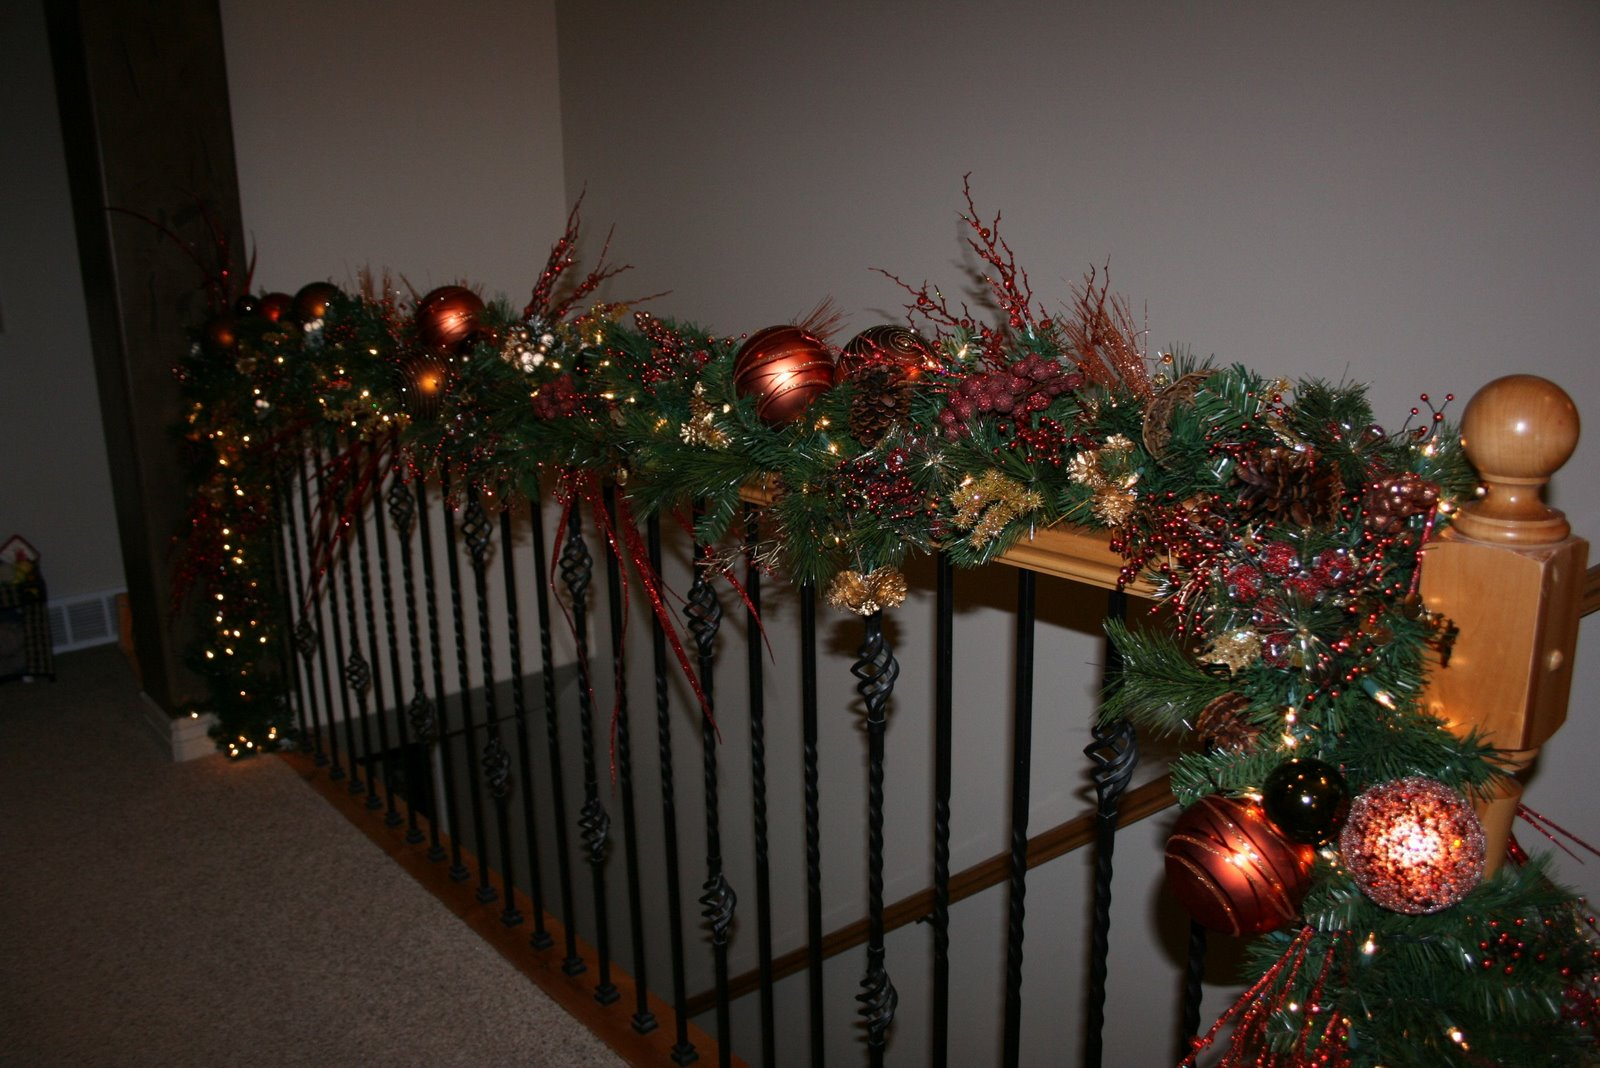 Tales From the Crib: Holiday Decorating 101